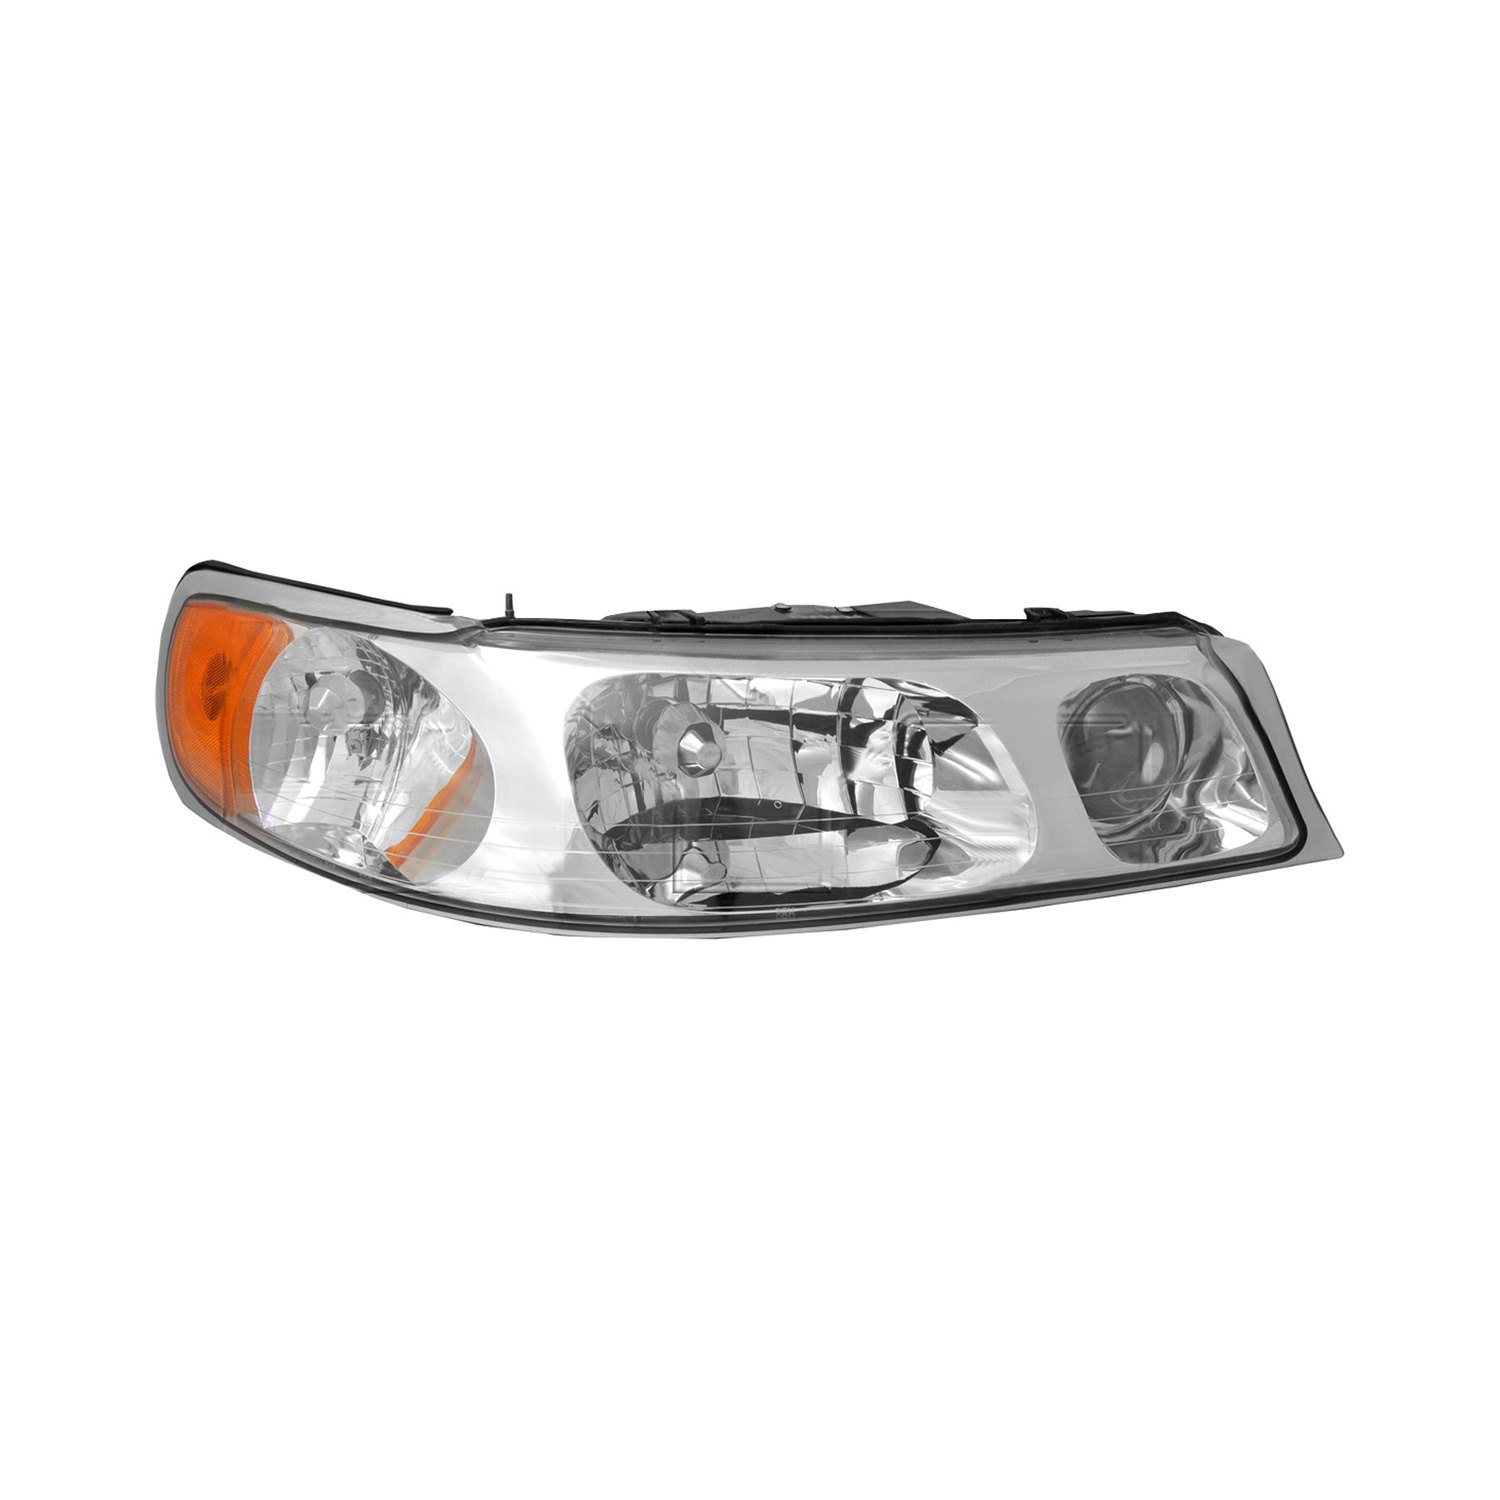 1998 Lincoln Town Car Interior: Lincoln Town Car 1998-2002 Replacement Headlight